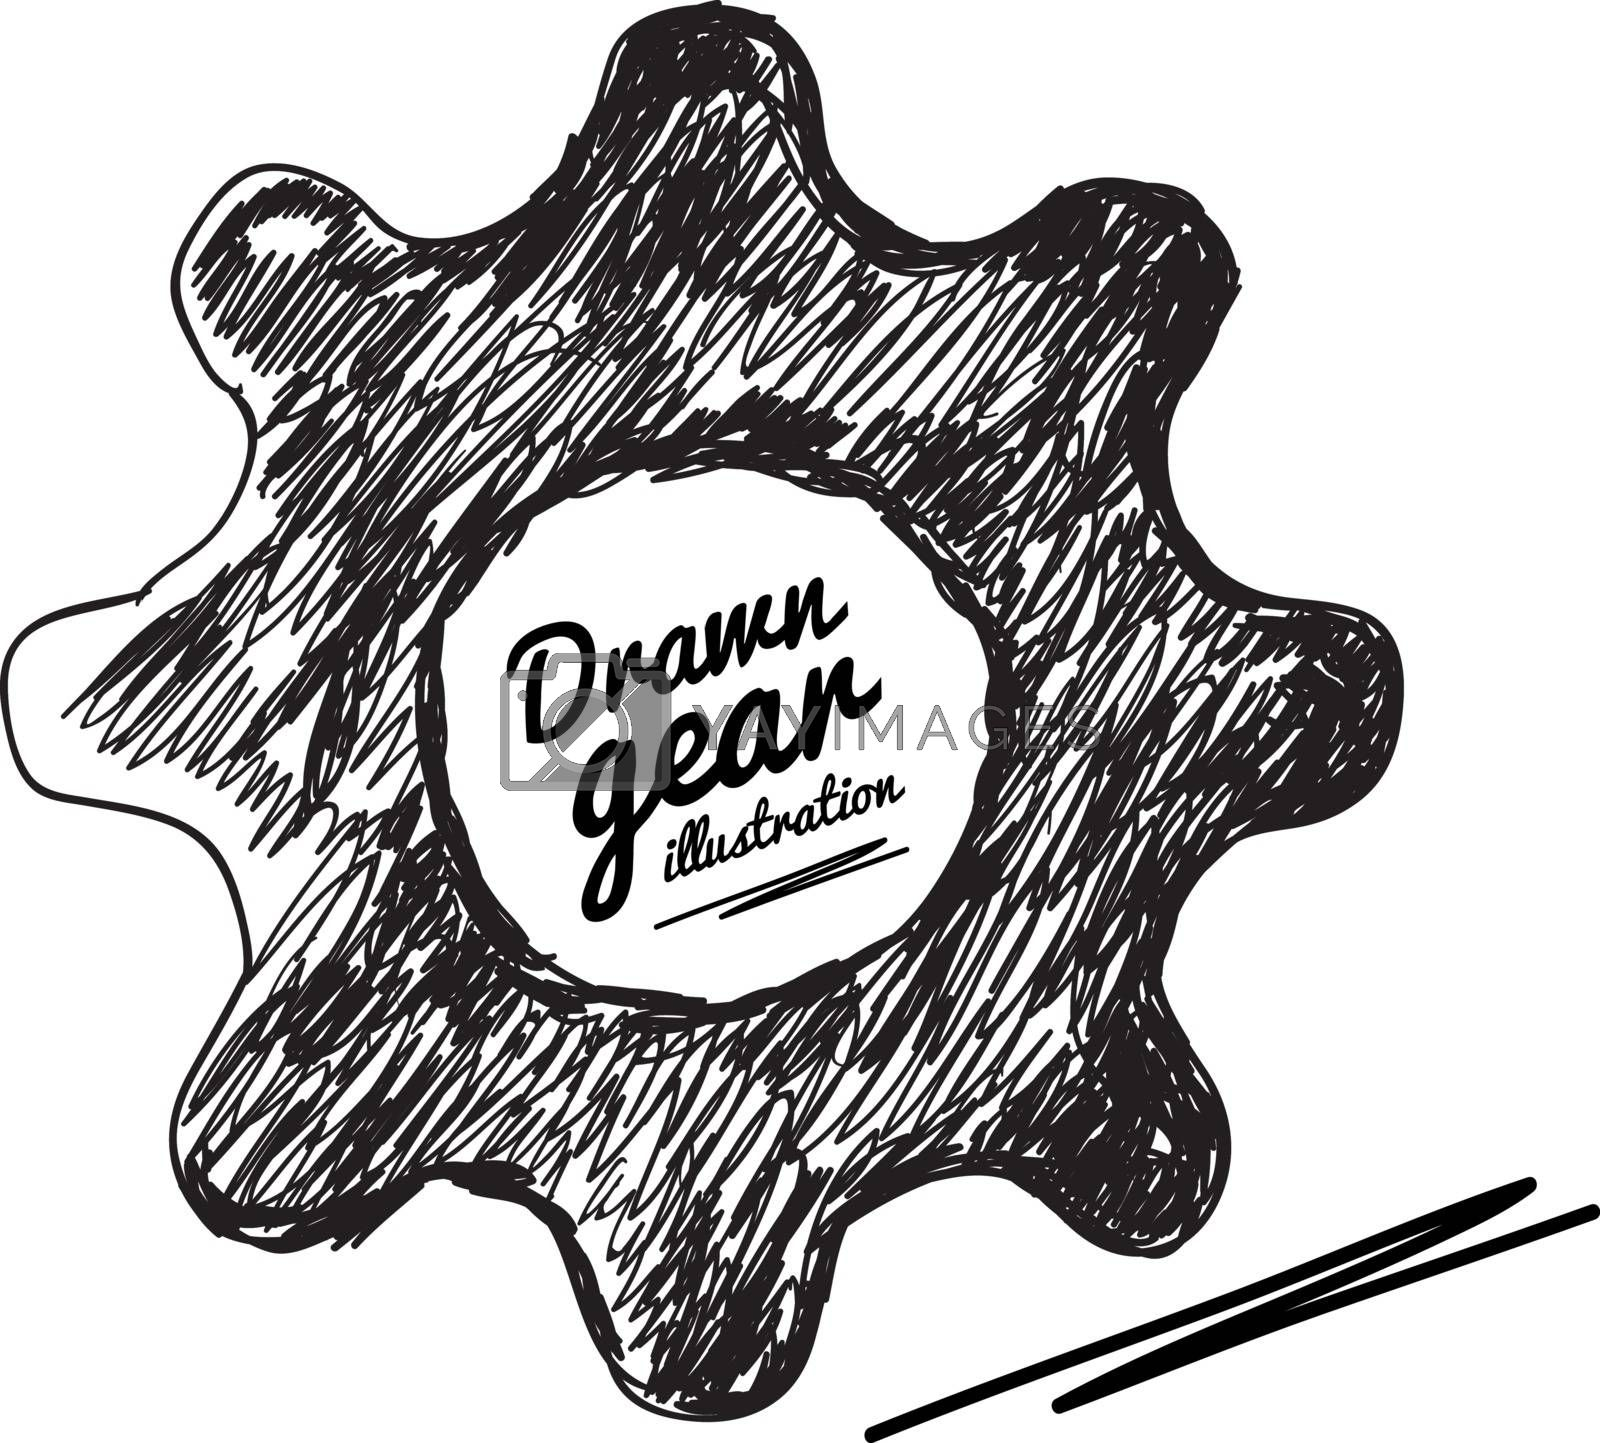 Gear drawn vector illustration on white background